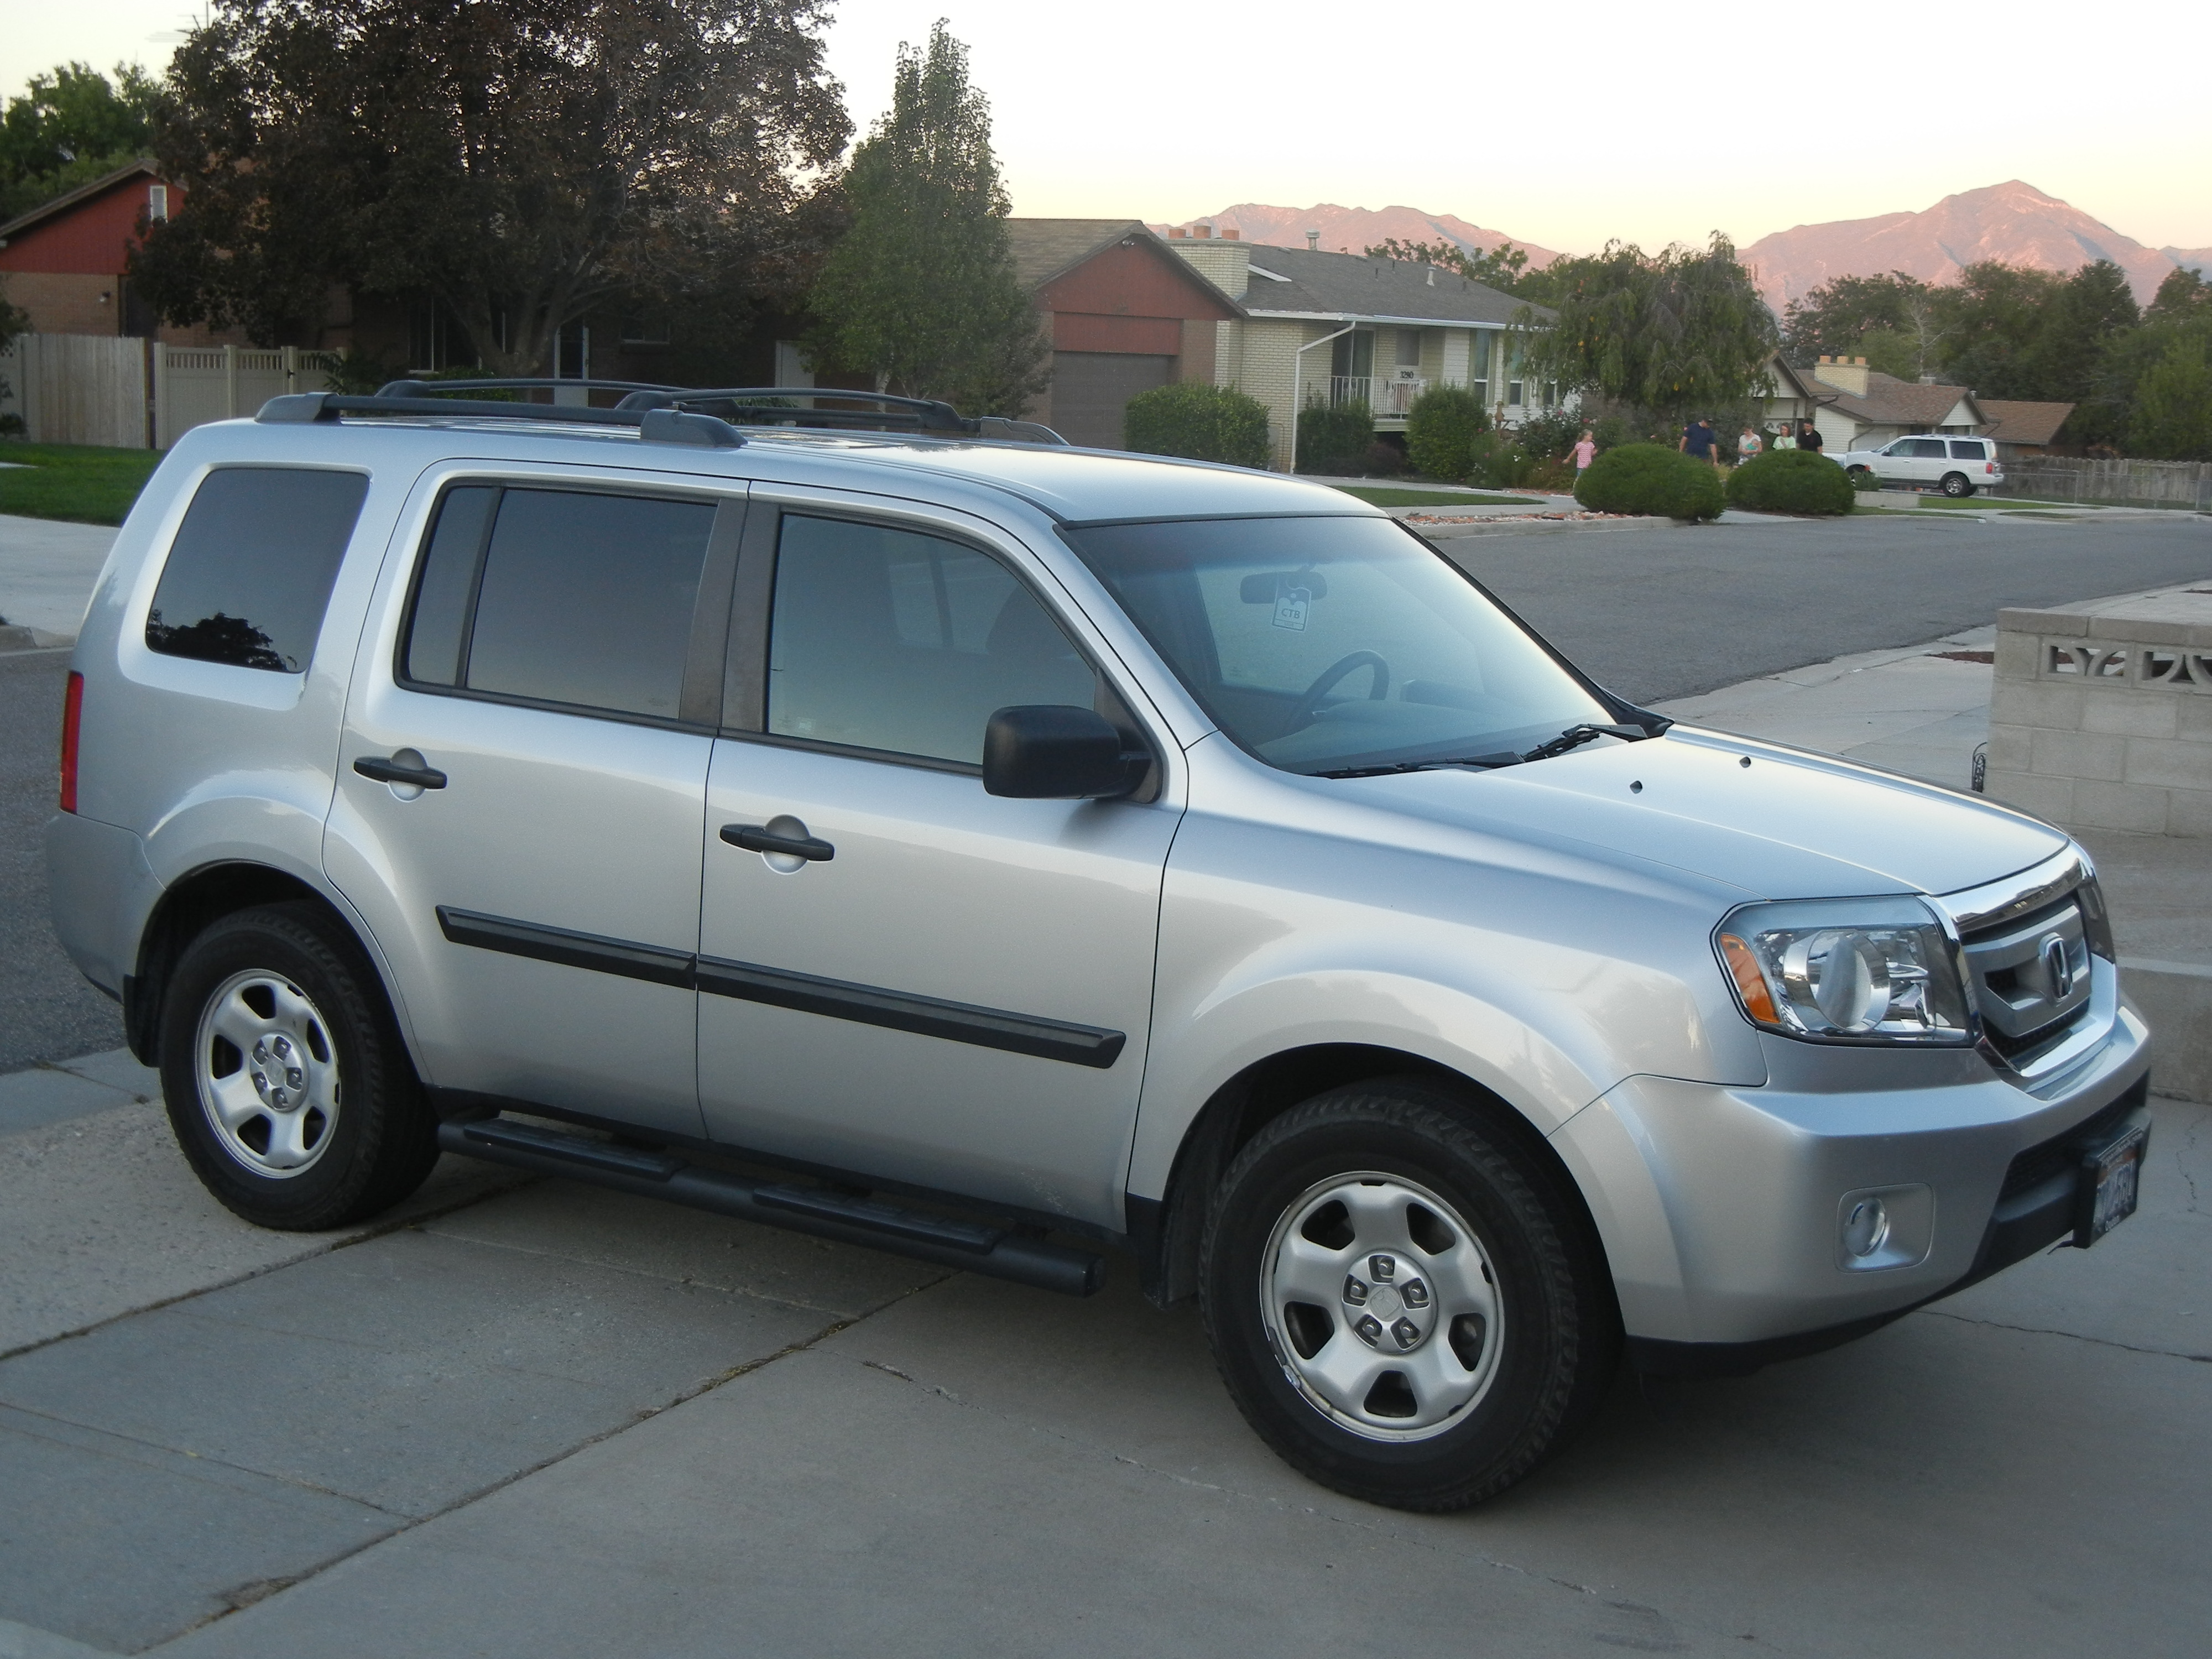 BUY this One-Of--A-Kind 2011 Pilot LX 4WD with LOW MILES